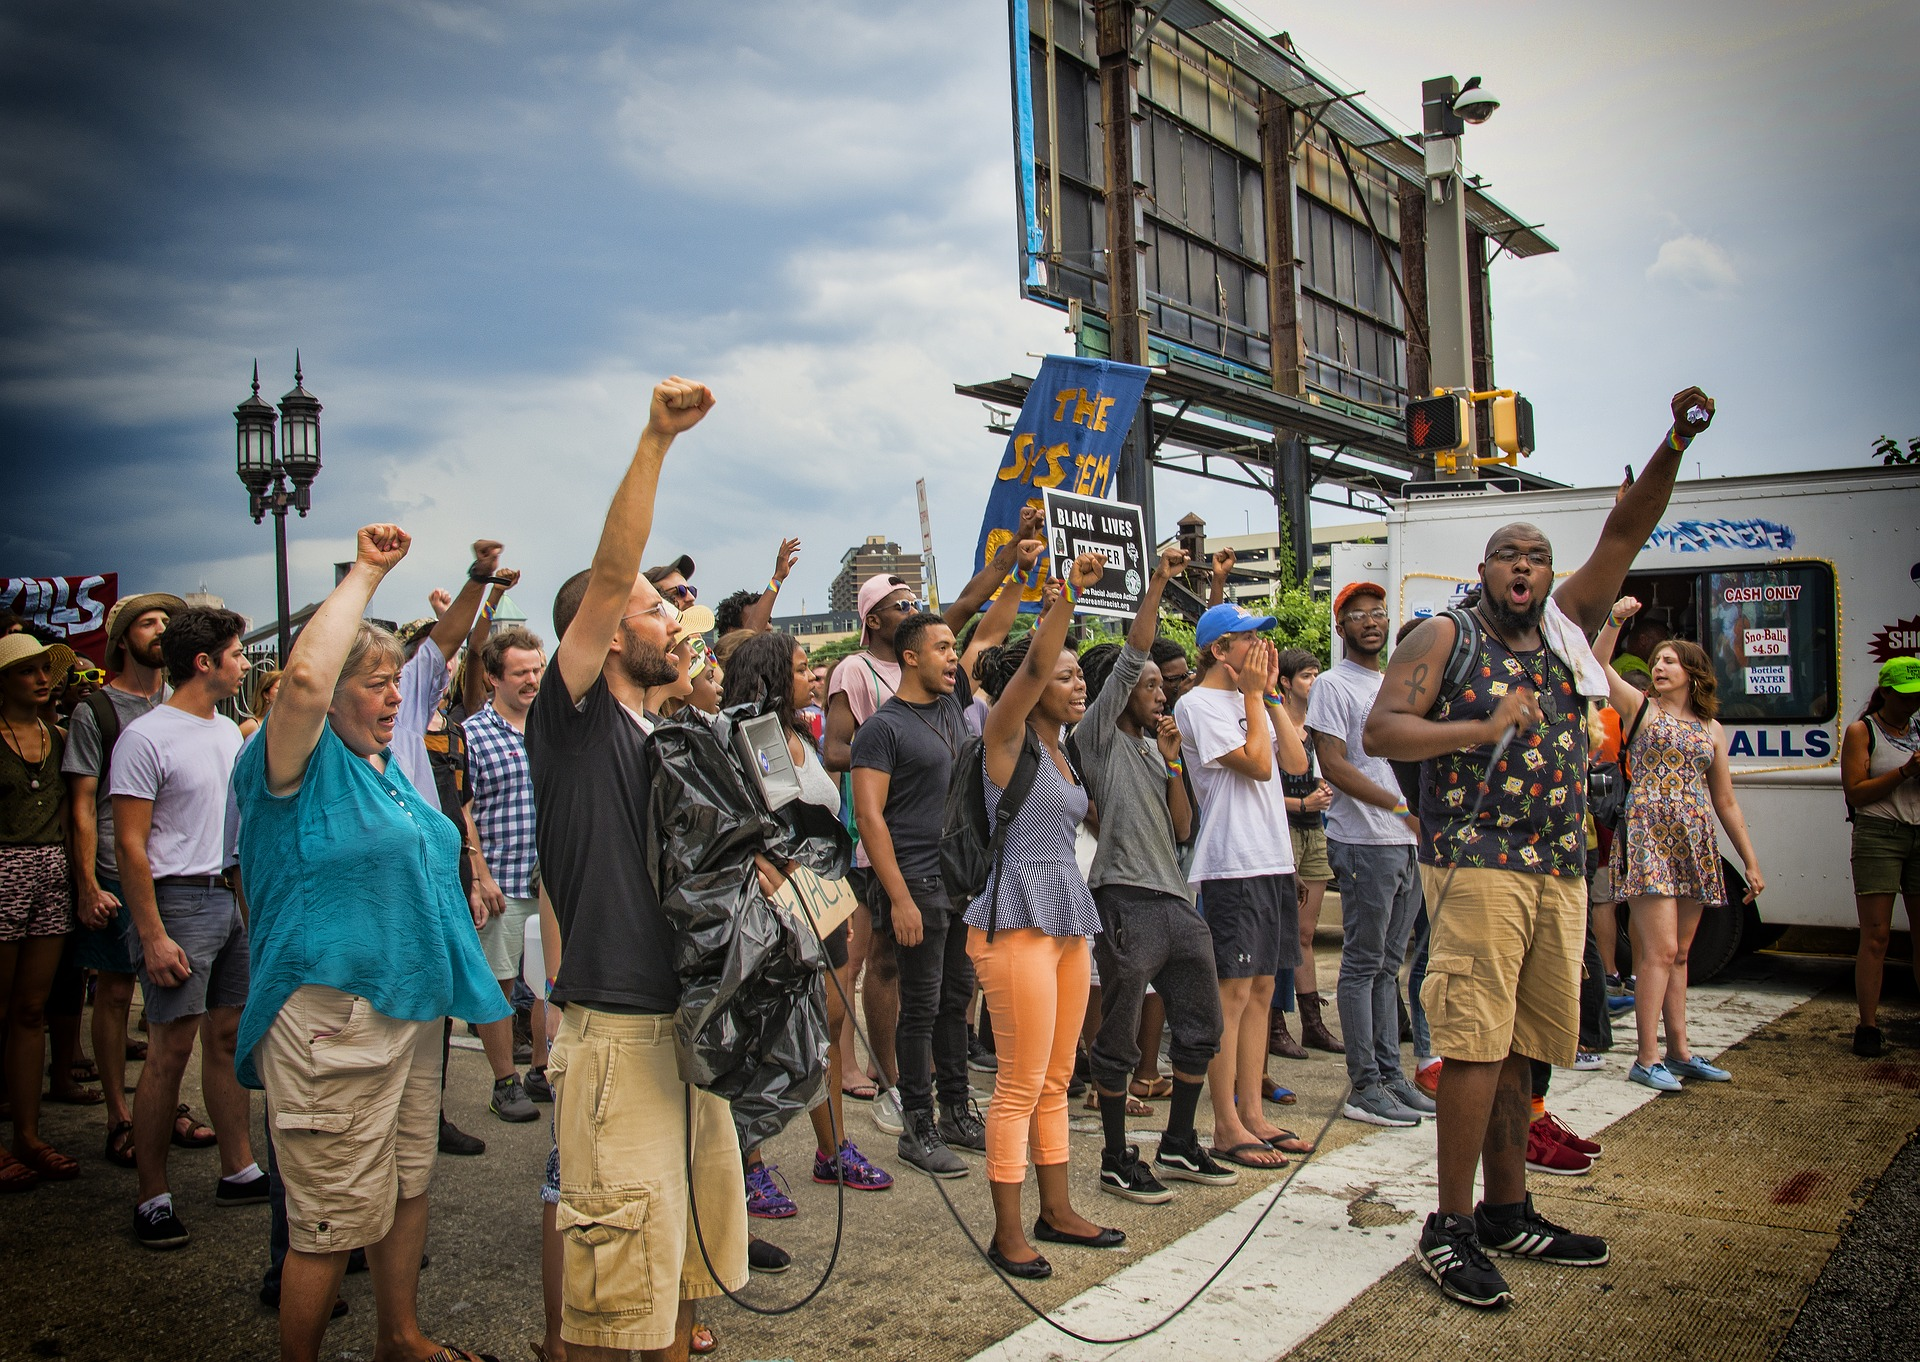 Oklahoma grants immunity to drivers who injure protesters on public roads.